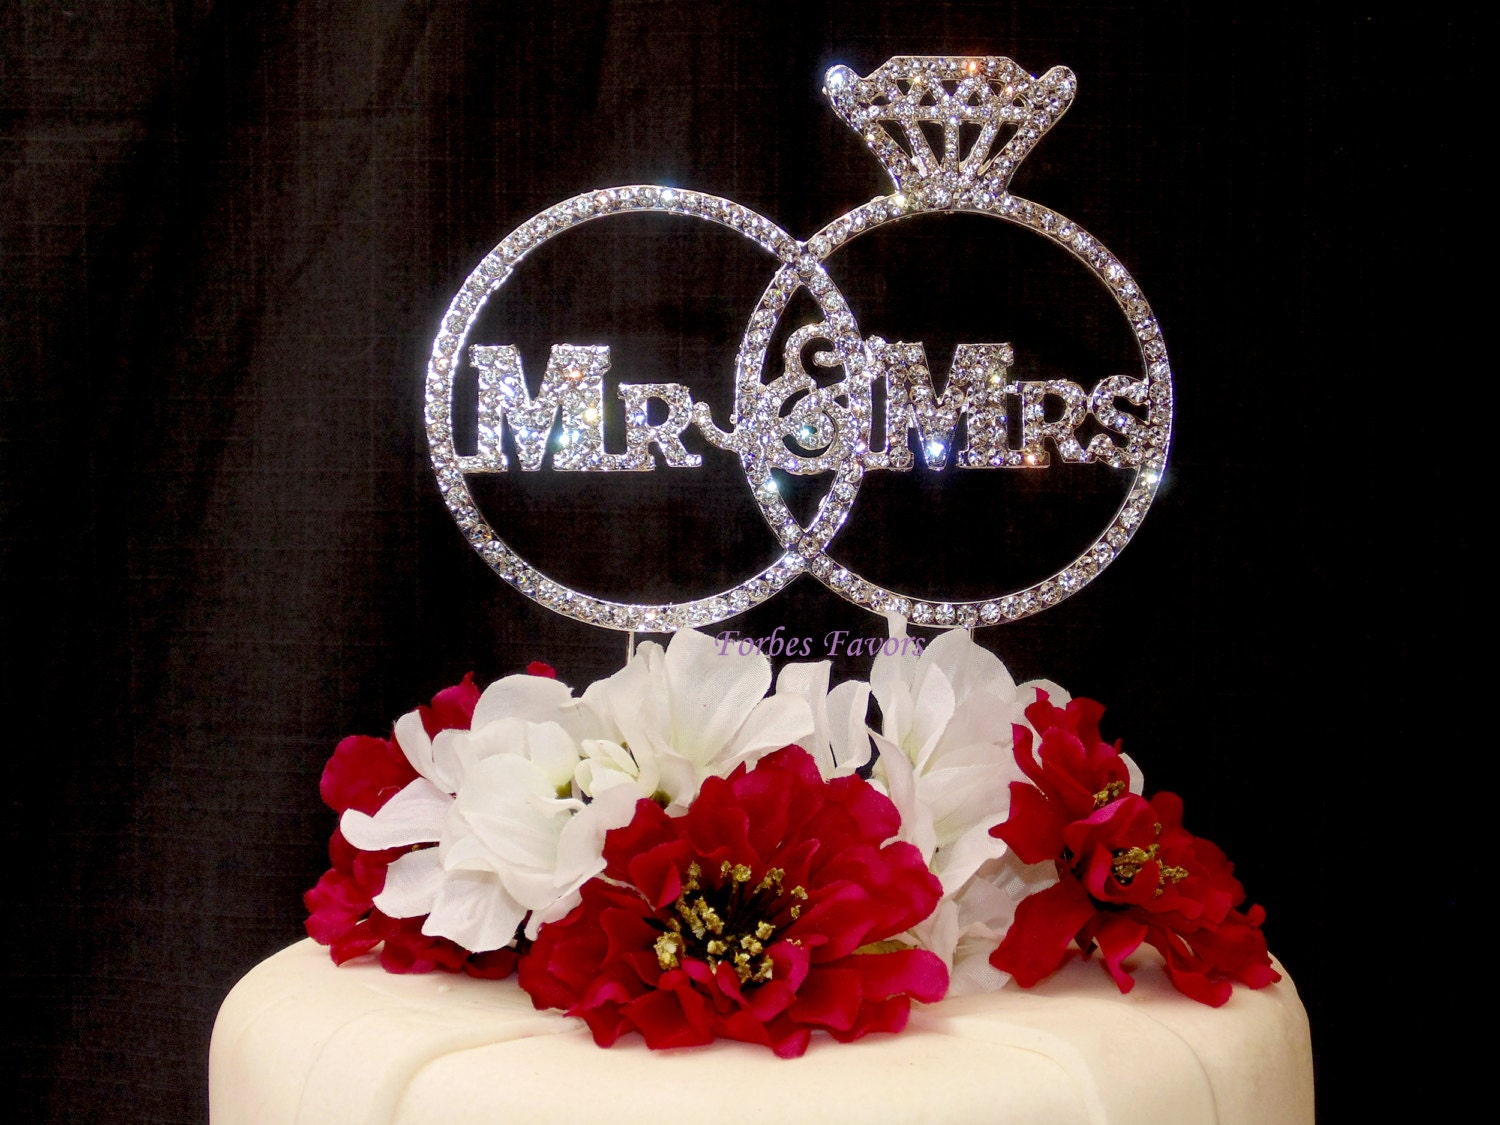 Gorgeous Mr & Mrs Real Rhinestone Rings Wedding Cake Topper